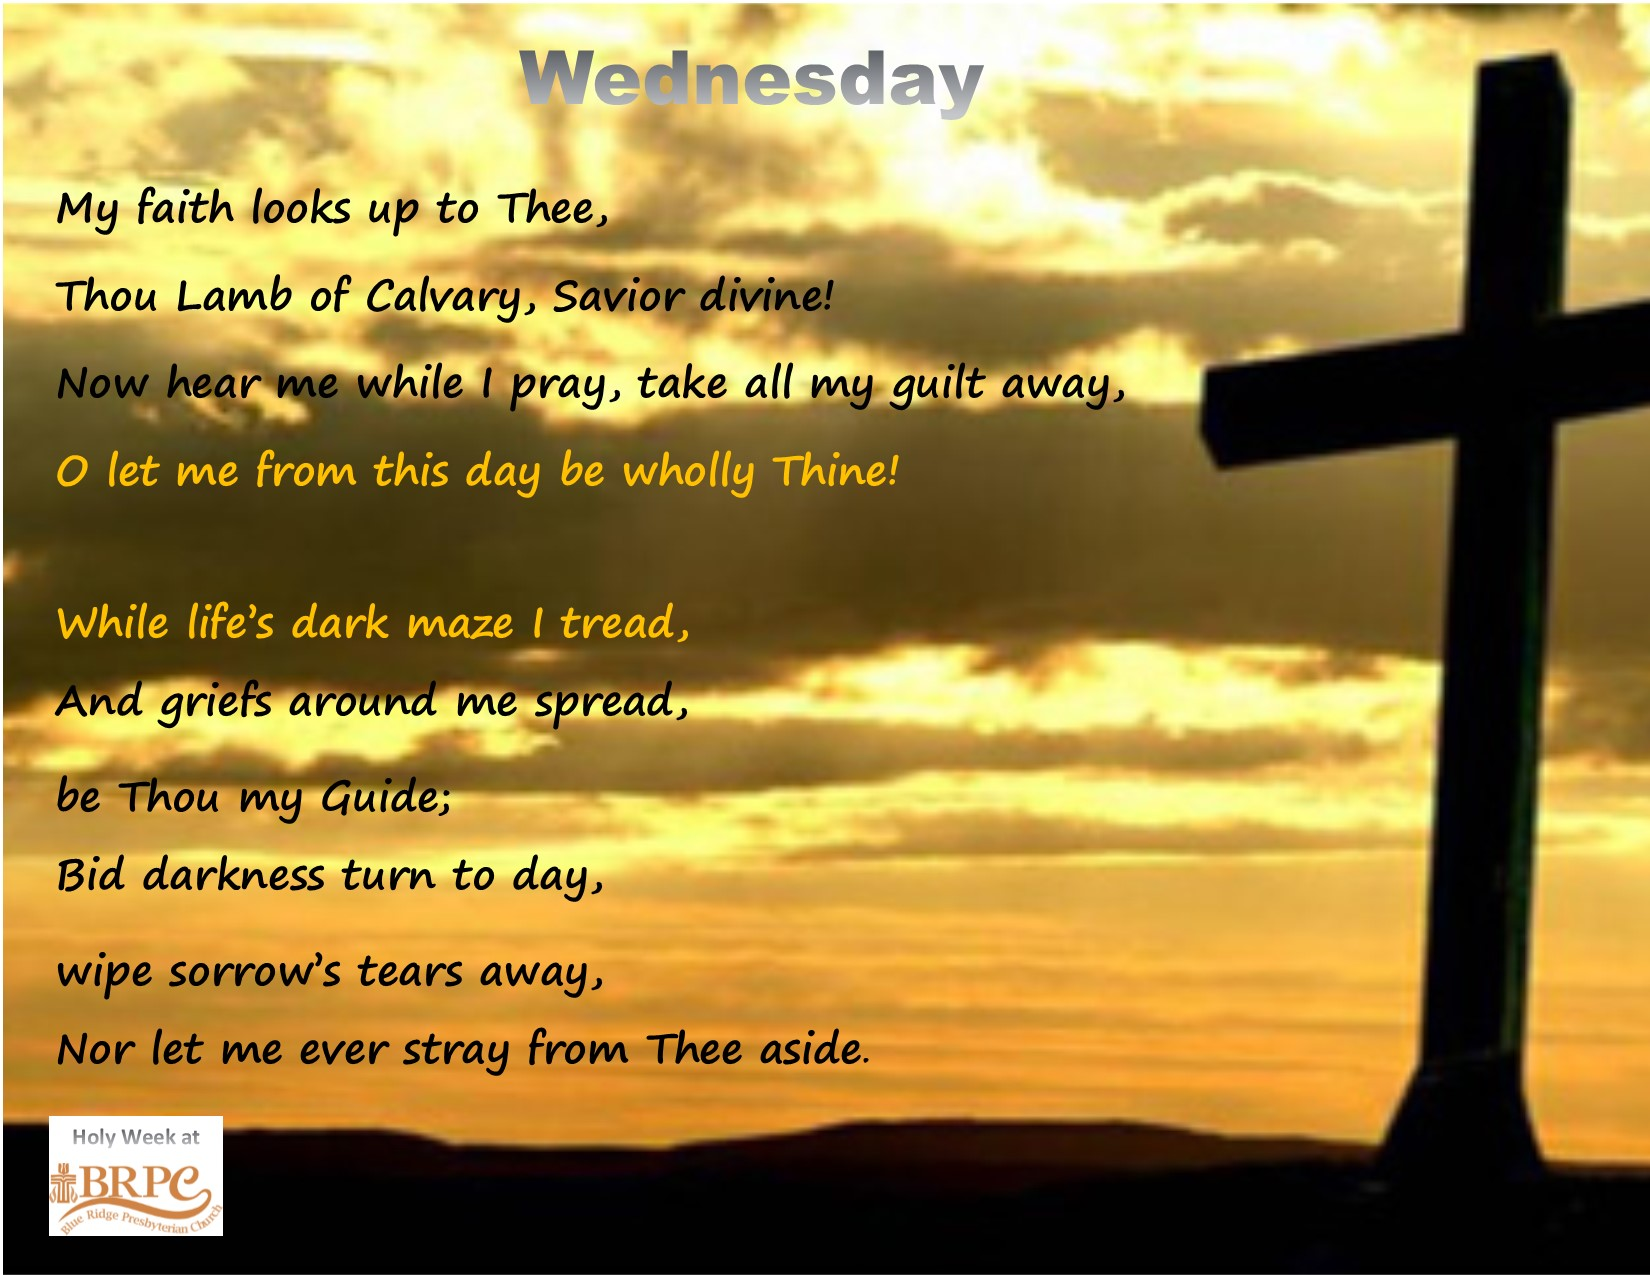 Holy Week: Great Wednesday